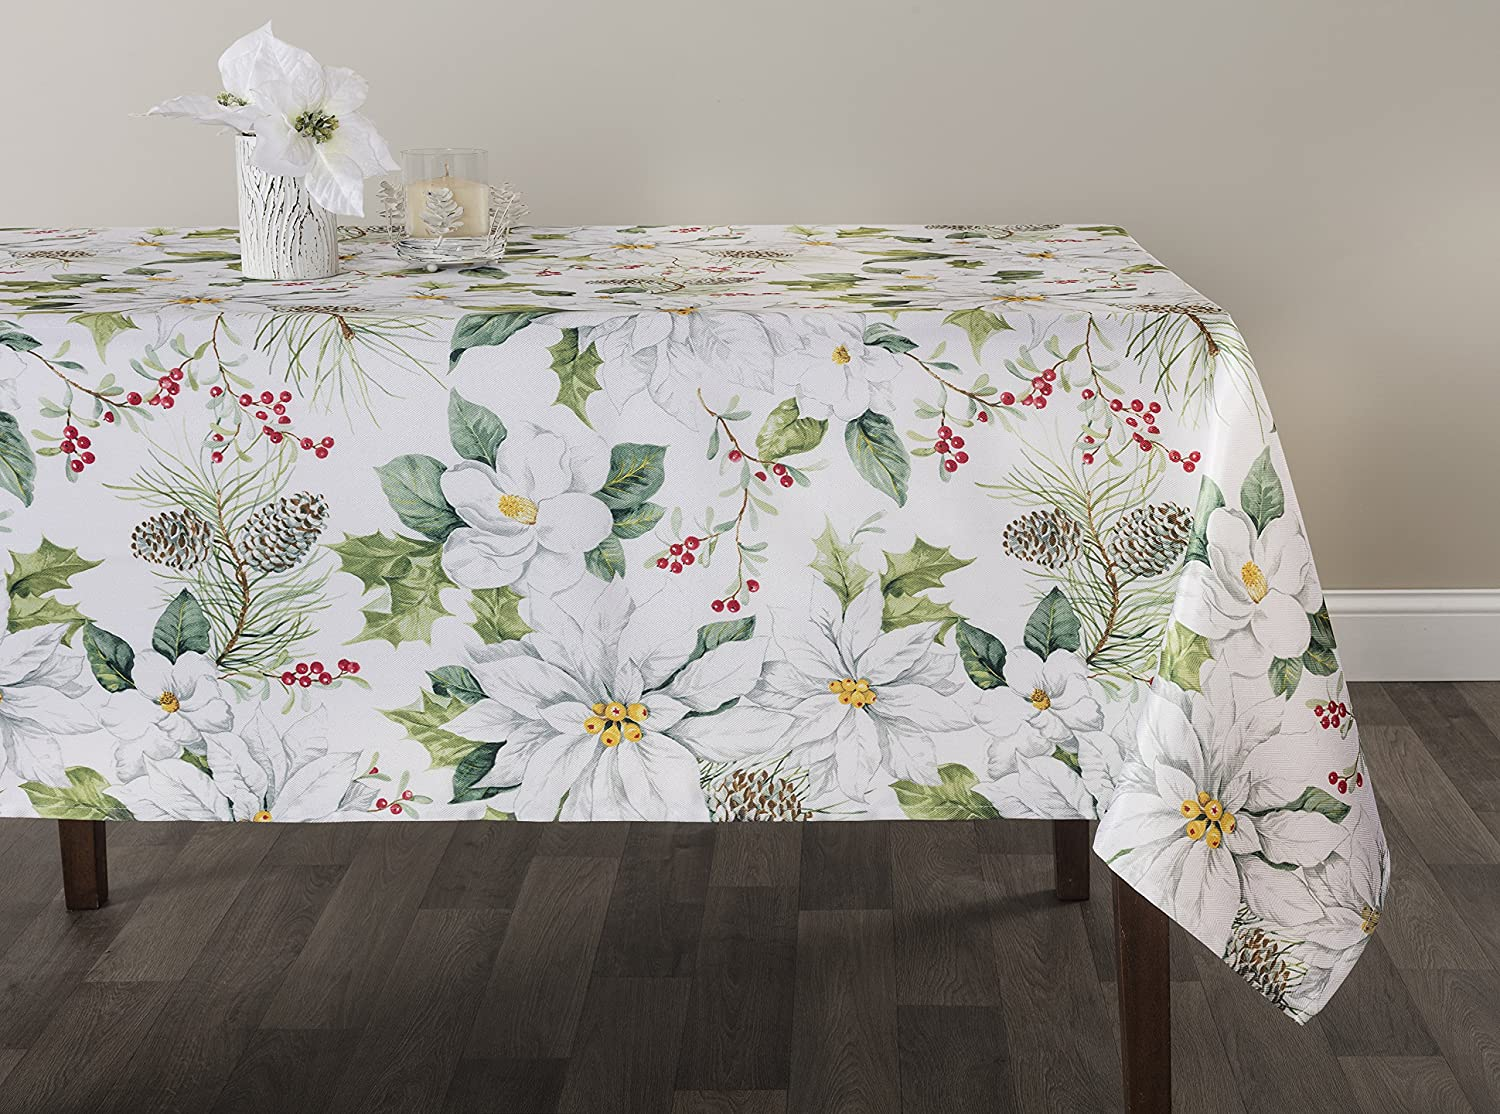 Christmas Tablecloths.Benson Mills Winter Poinsettia Herringbone Print Christmas Tablecloths White Poinsettia 60 X 84 Rectangular